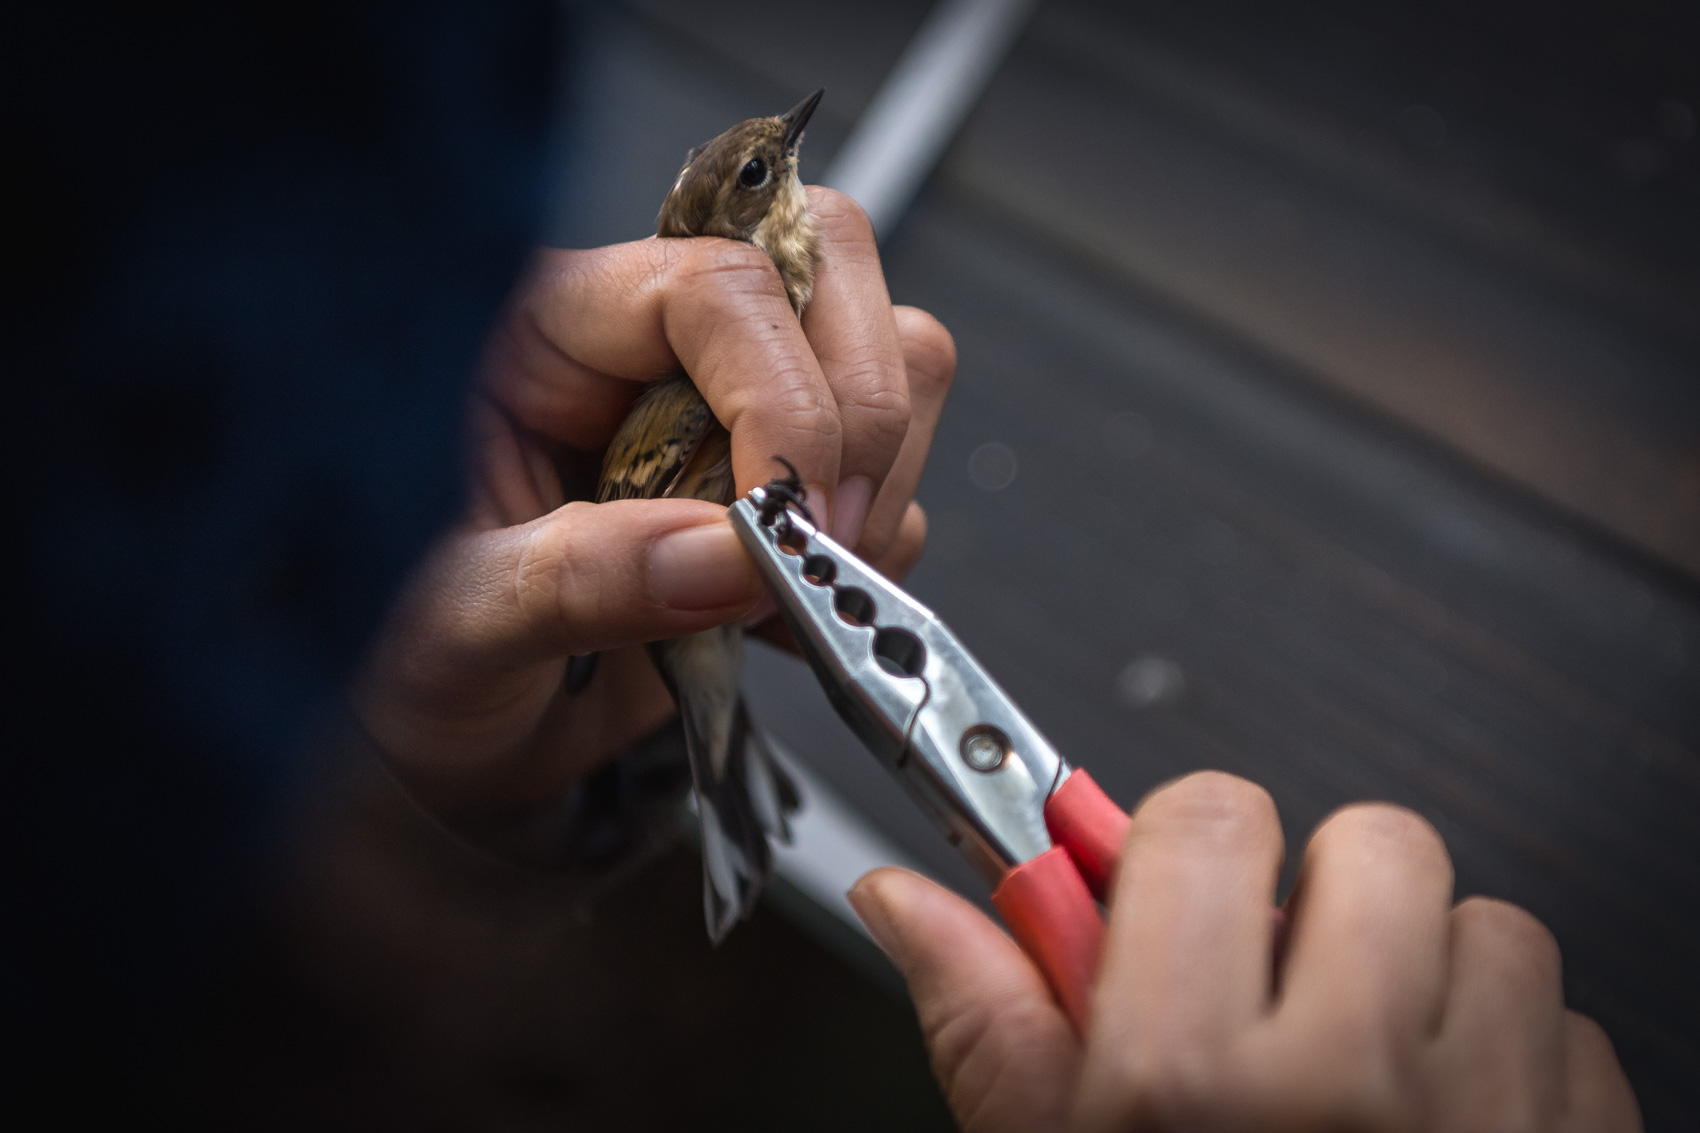 A bird bander uses banding pliers to place a band on a birds leg at the Long Point Bird Observatory research station